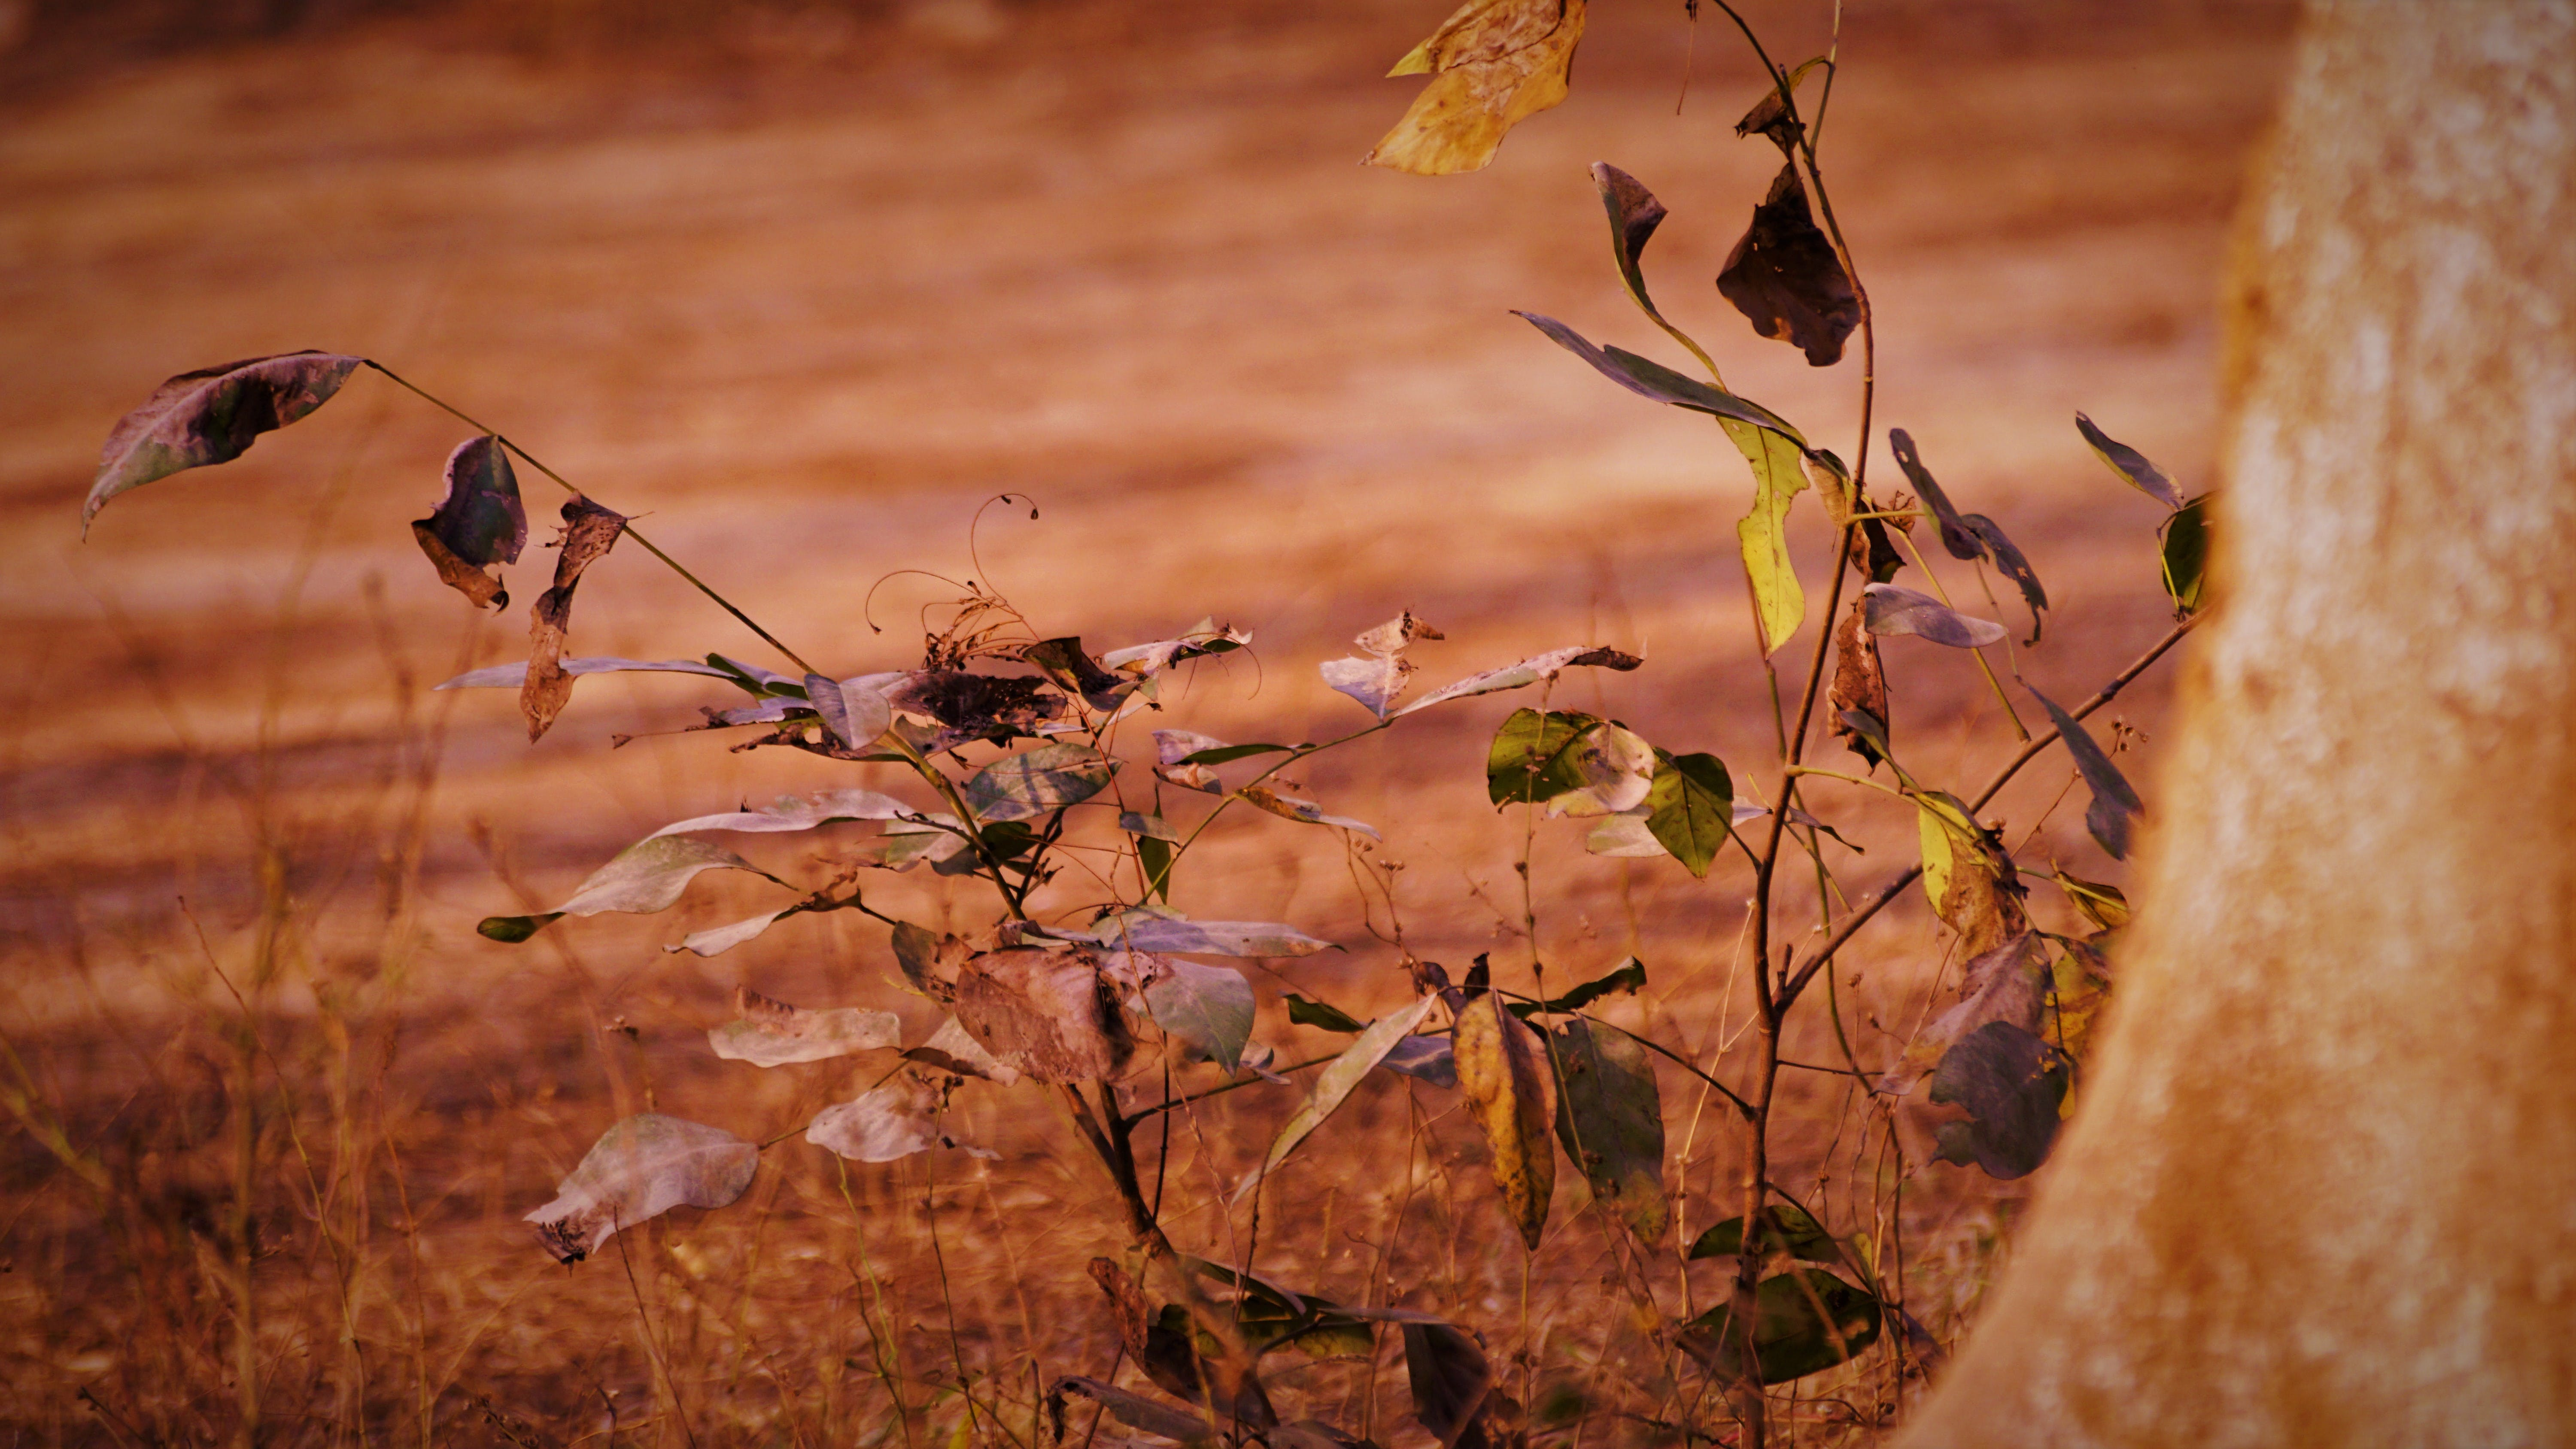 Free stock photo of dried leaves, wilderness